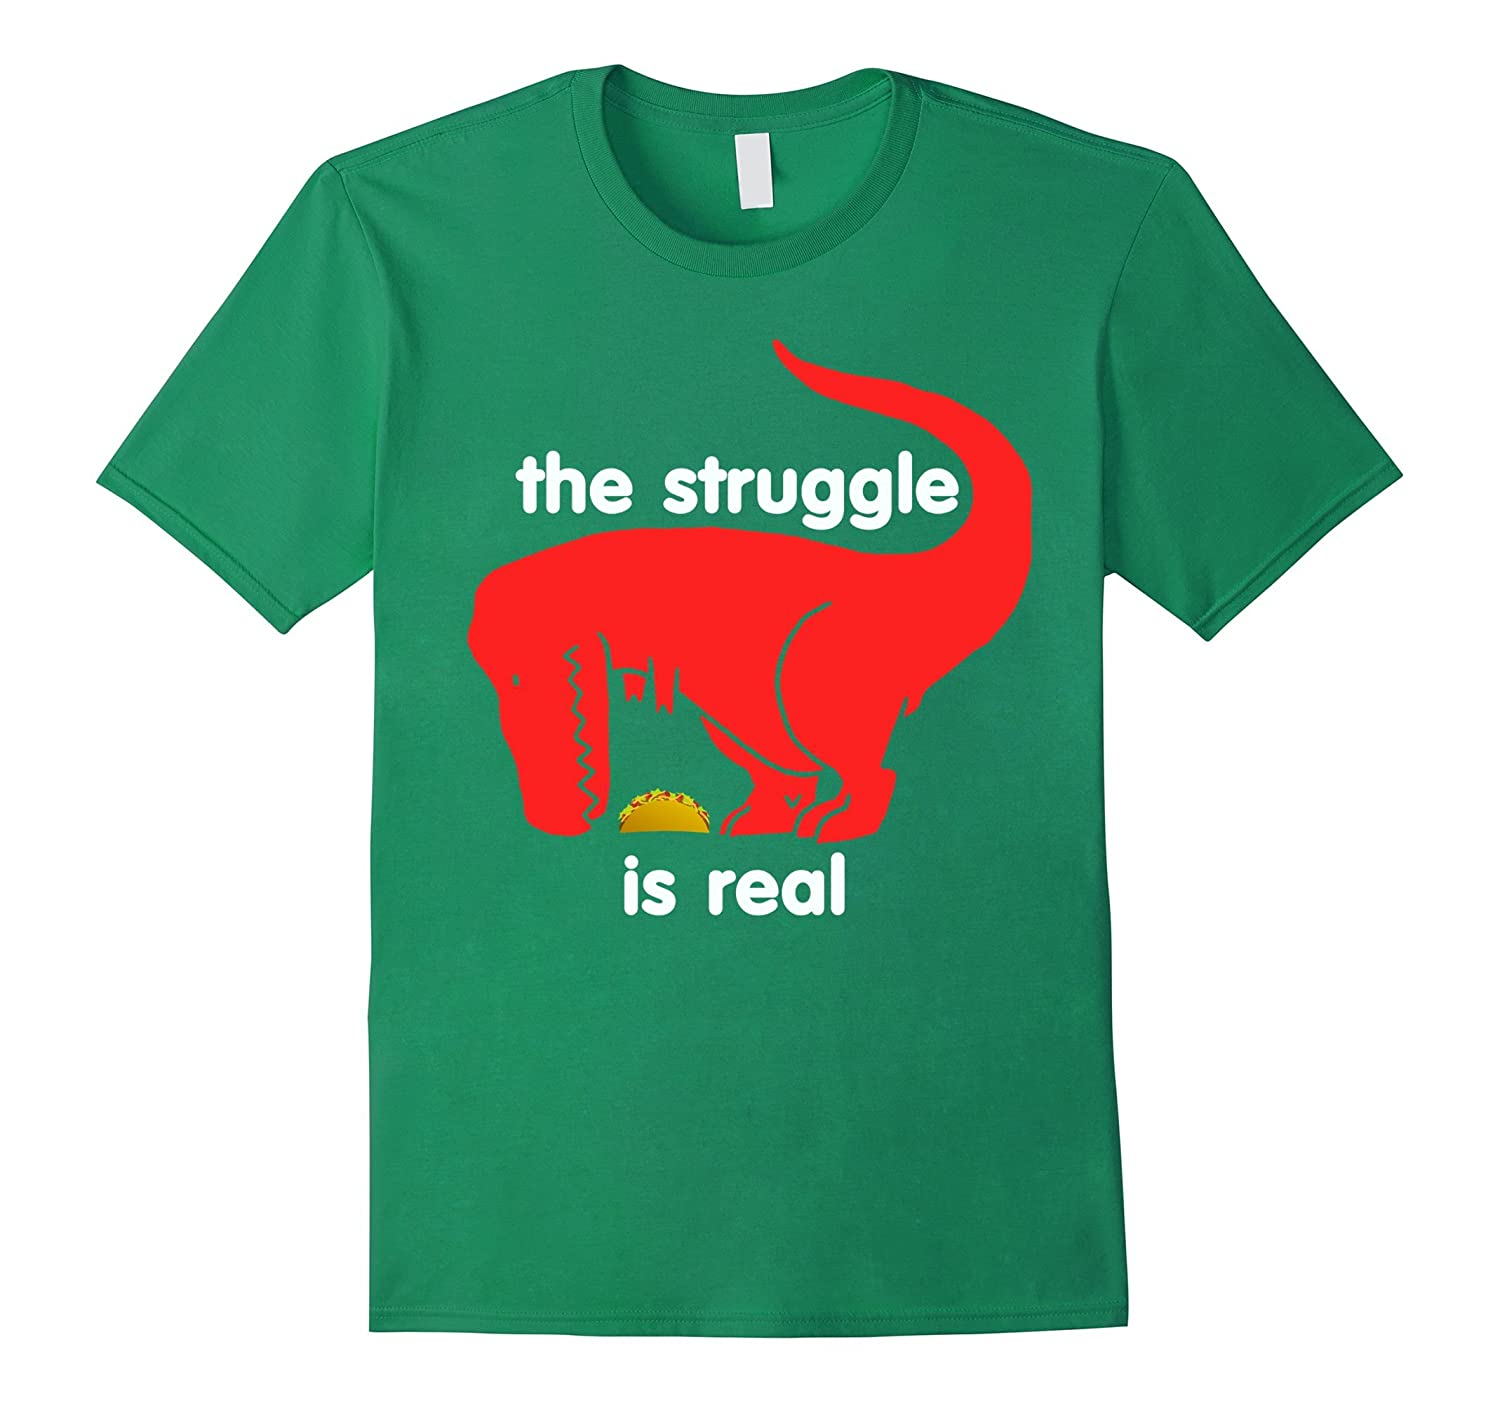 a0bd59a81 T Rex The Struggle Is Real Tacos Funny T Shirt-Vaci – Vaciuk